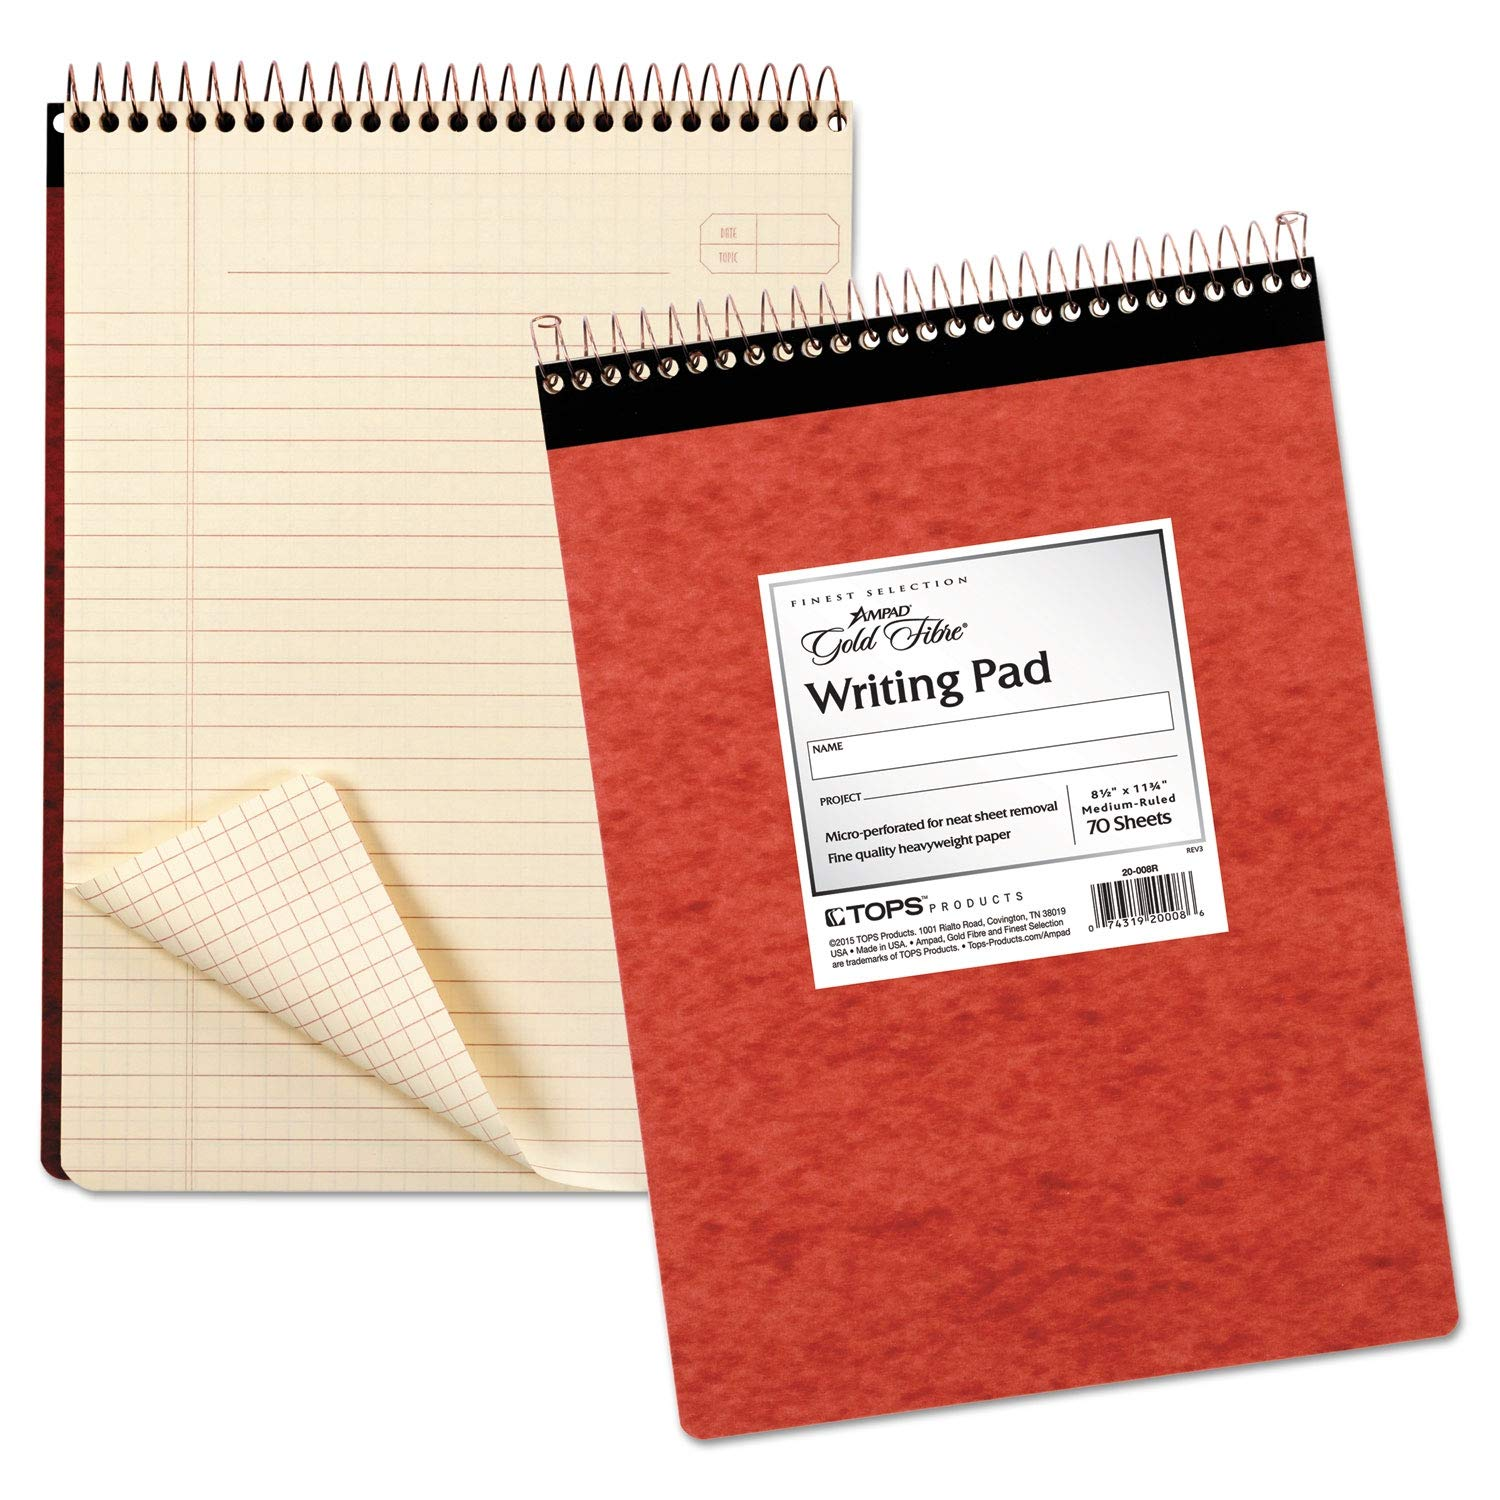 Ampad Gold Fibre Retro Wirebound Writing Pad, Legal, 8 1/2 x 11 3/4, Ivory, 70 Sheets - 20-008R (Pack of 2) by Ampad